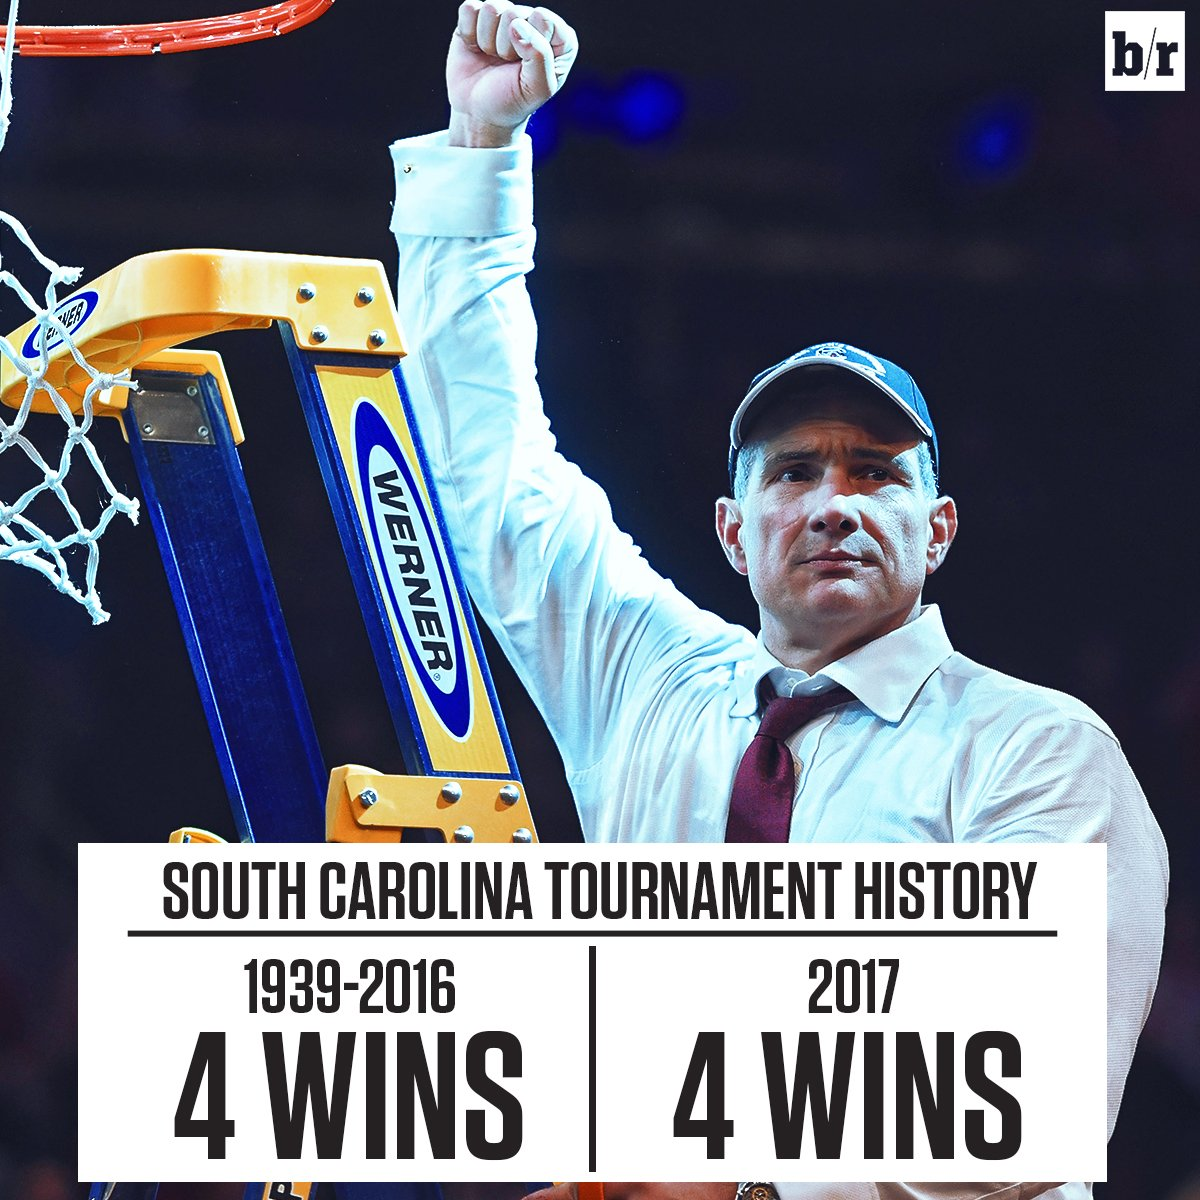 Frank Martin is taking South Carolina to new heights.